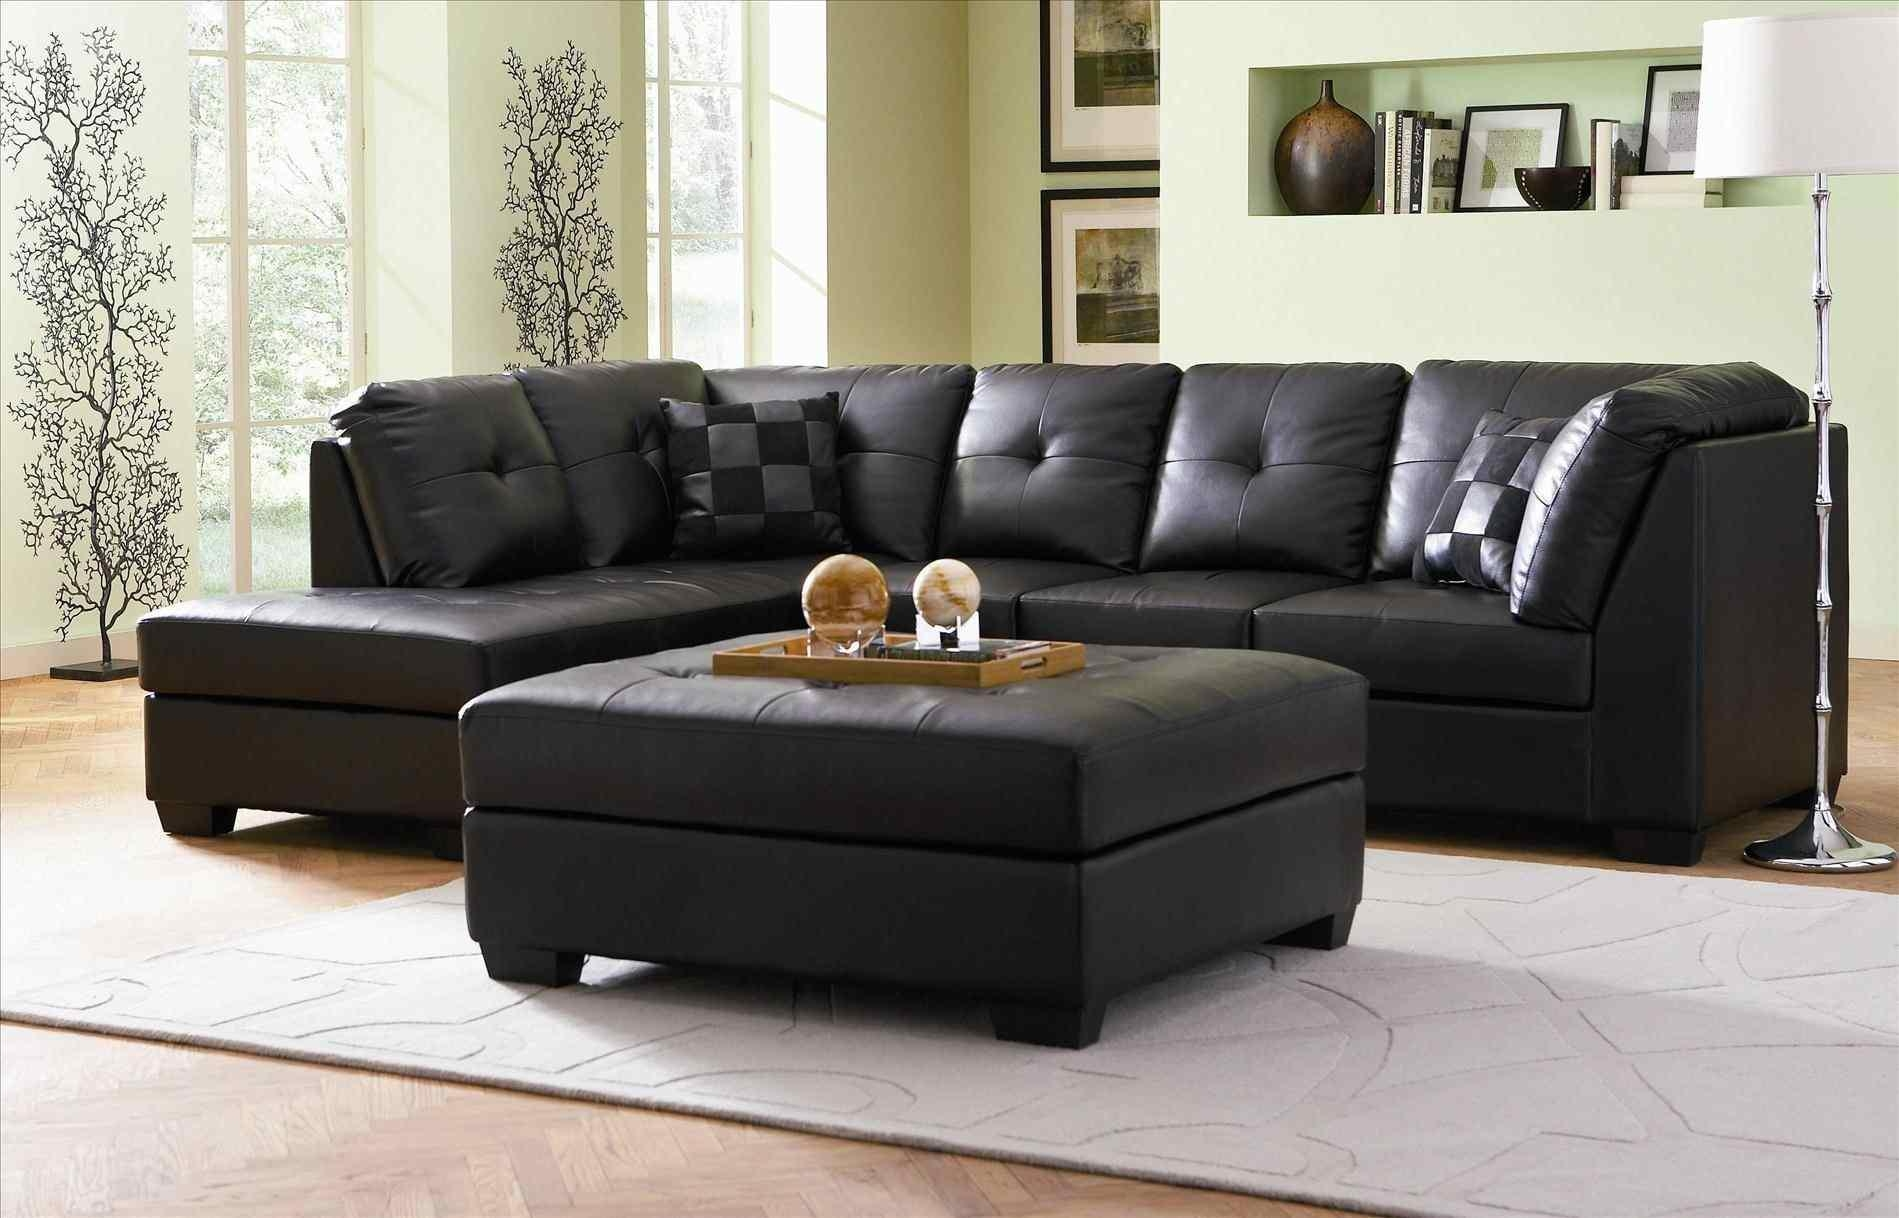 Sectional Sofas Denver | Chikara Do Reiki Pertaining To Denver Sectional (Image 13 of 15)